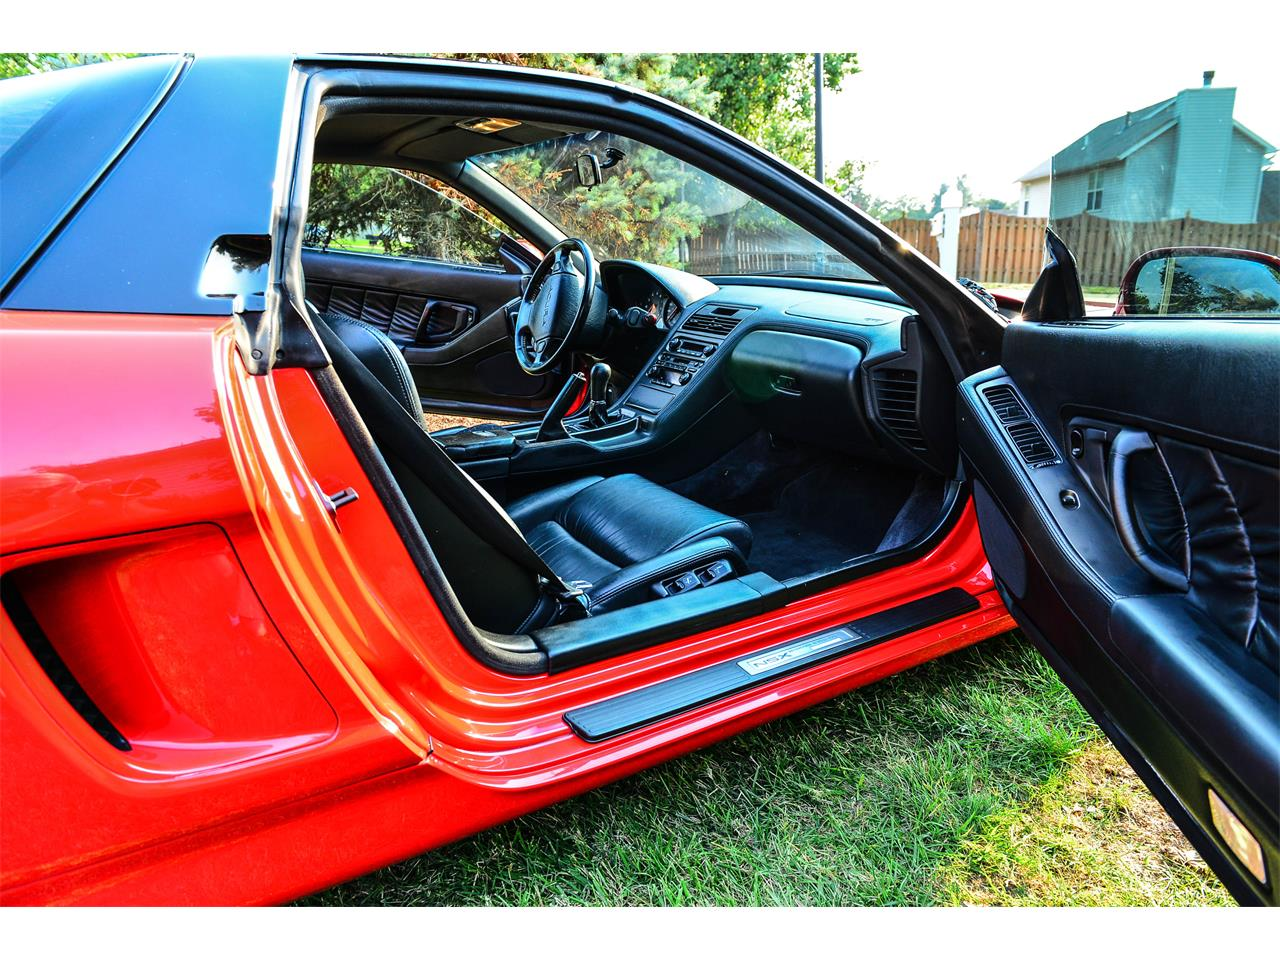 Large Picture of 1993 Acura NSX located in Missouri - $55,500.00 - M4DD